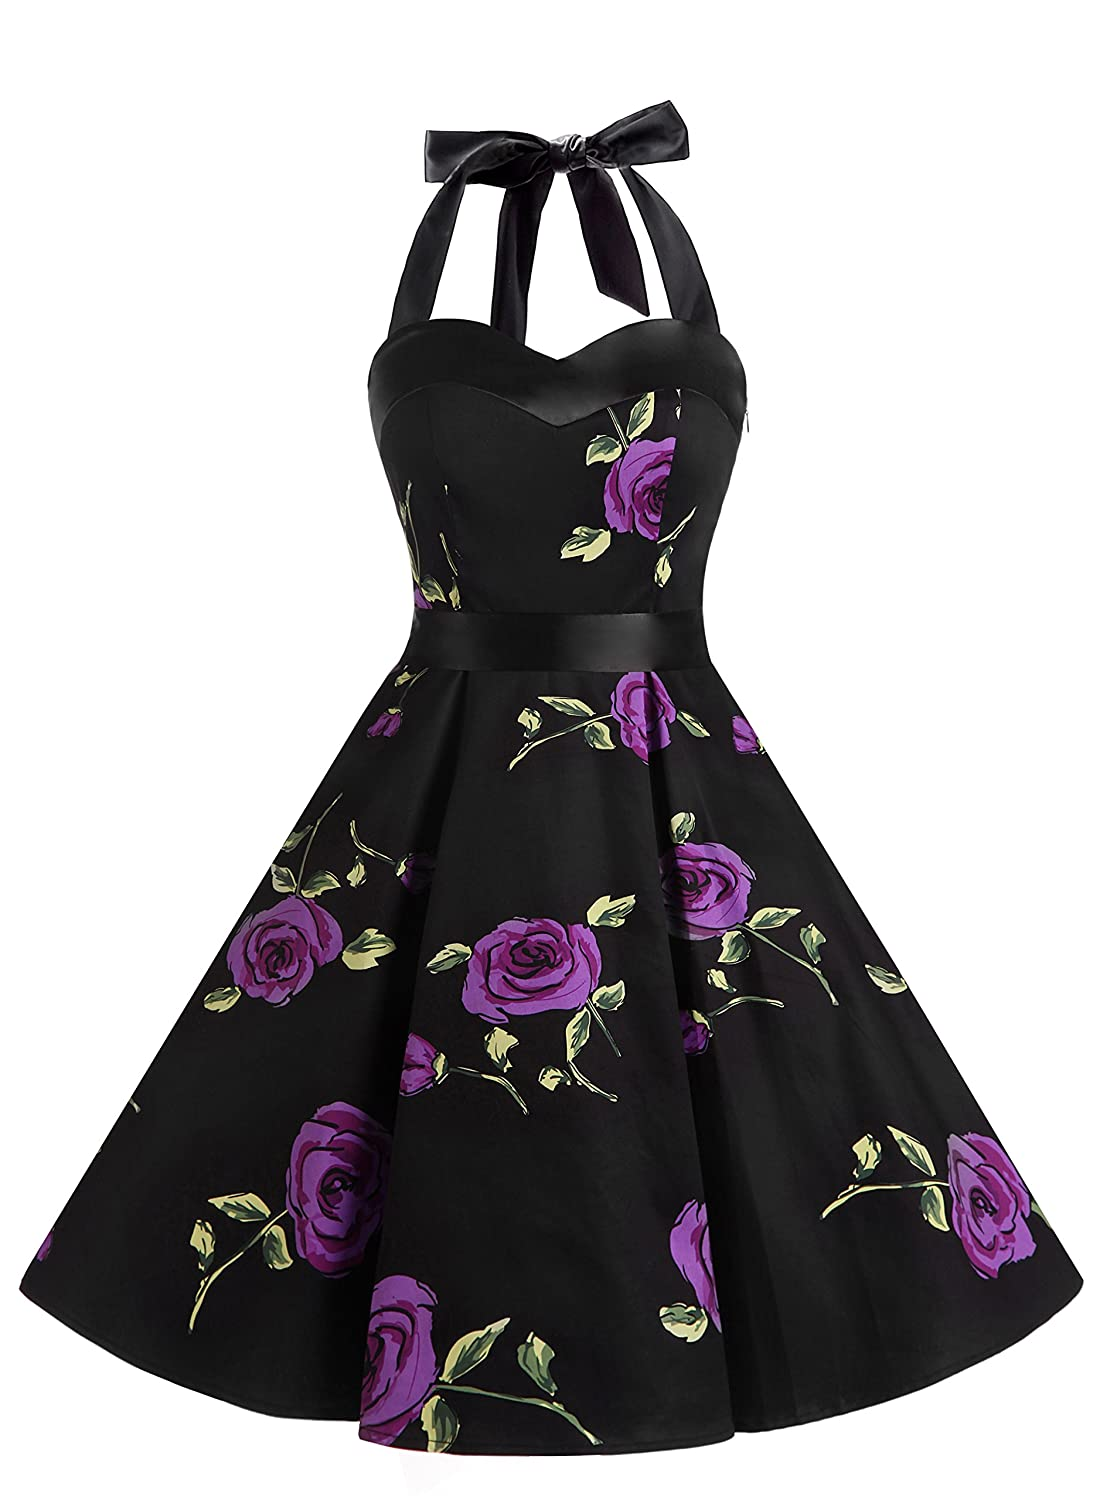 TALLA XL. Dresstells® Halter 50s Rockabilly Polka Dots Audrey Dress Retro Cocktail Dress Purpleflower XL